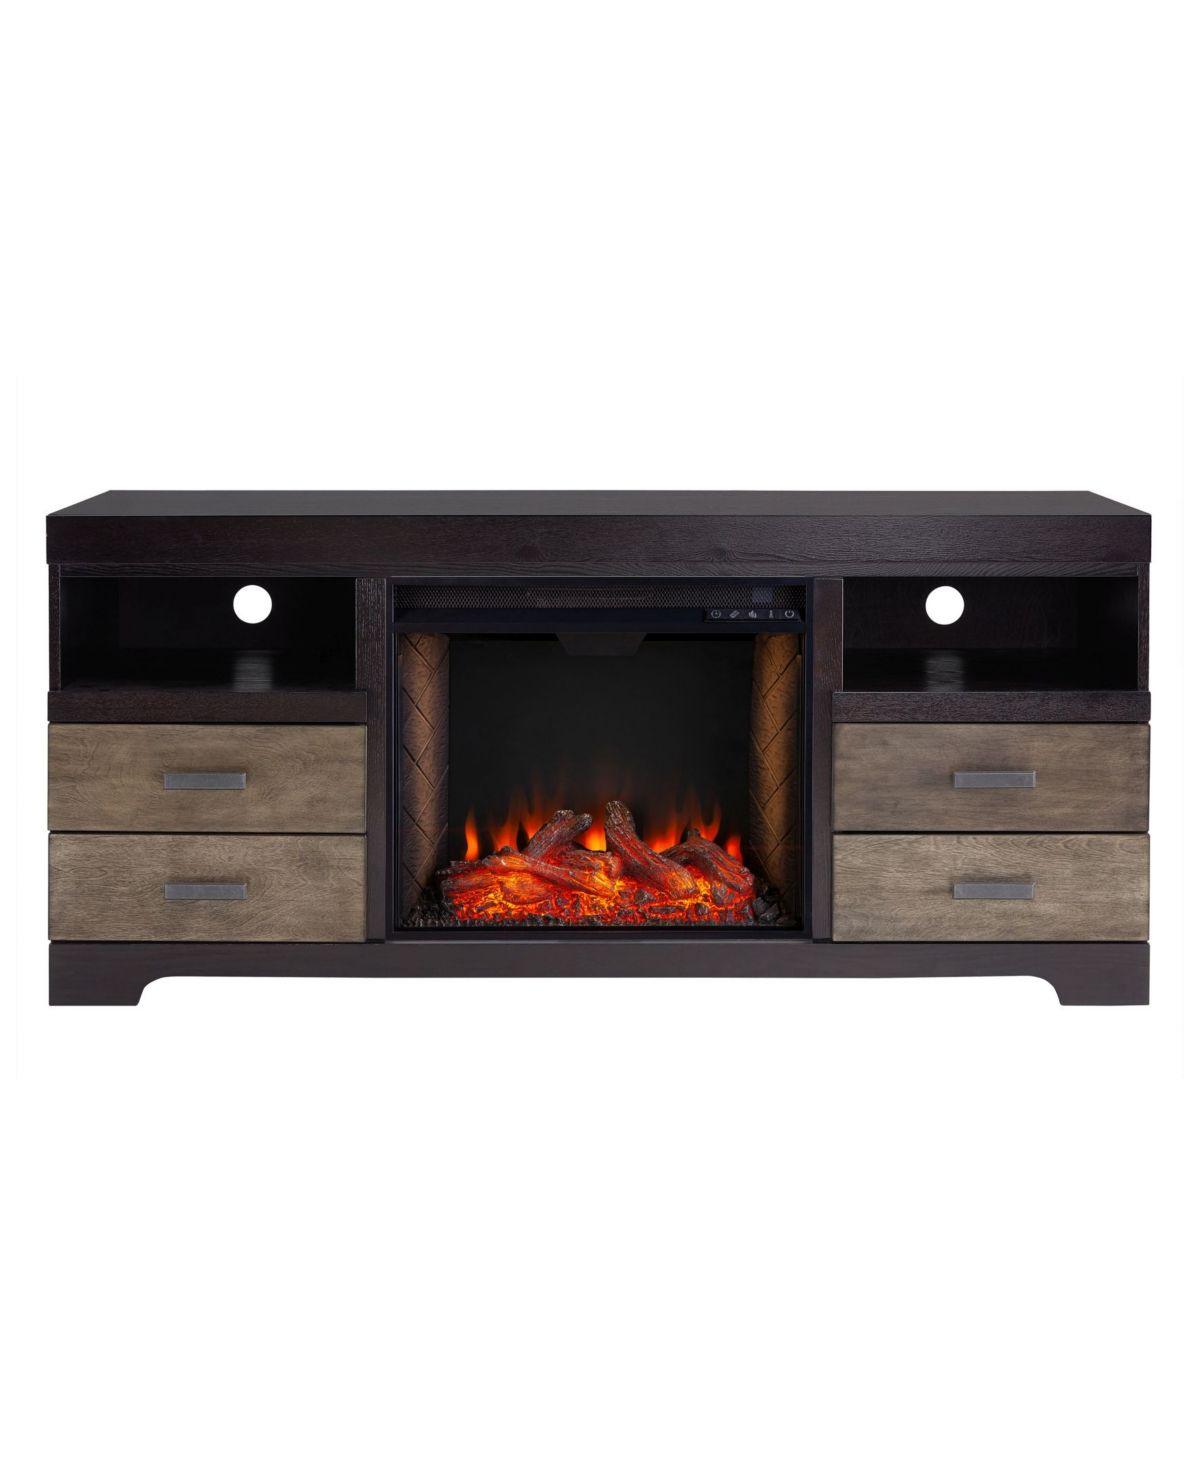 Southern Enterprises Enzo Alexa Enabled Electric Fireplace With